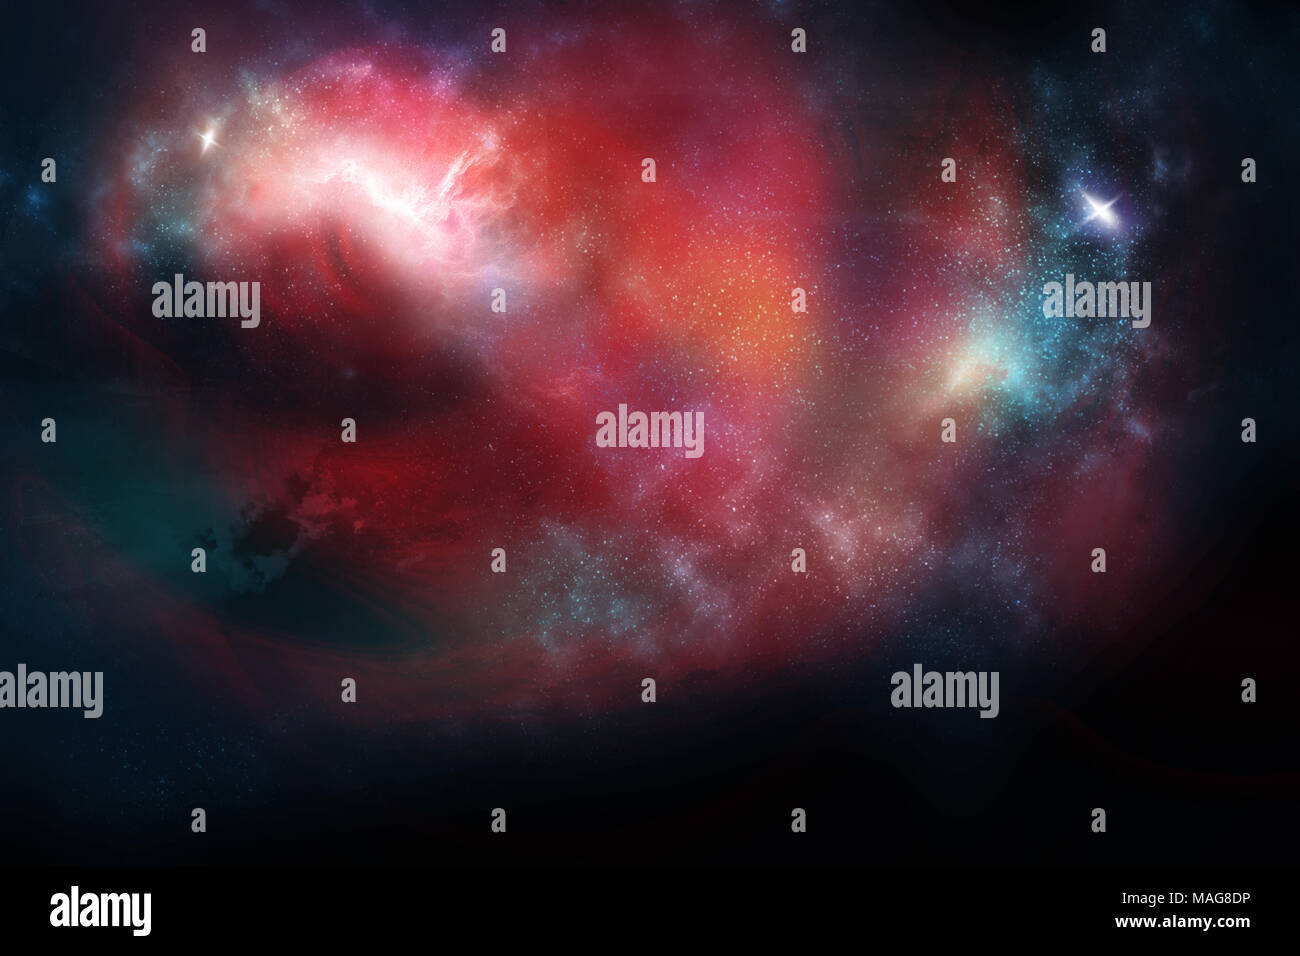 Celestial Art, Stars and Galaxies in Outer Space Showing the Beauty of Space exploration. - Stock Image